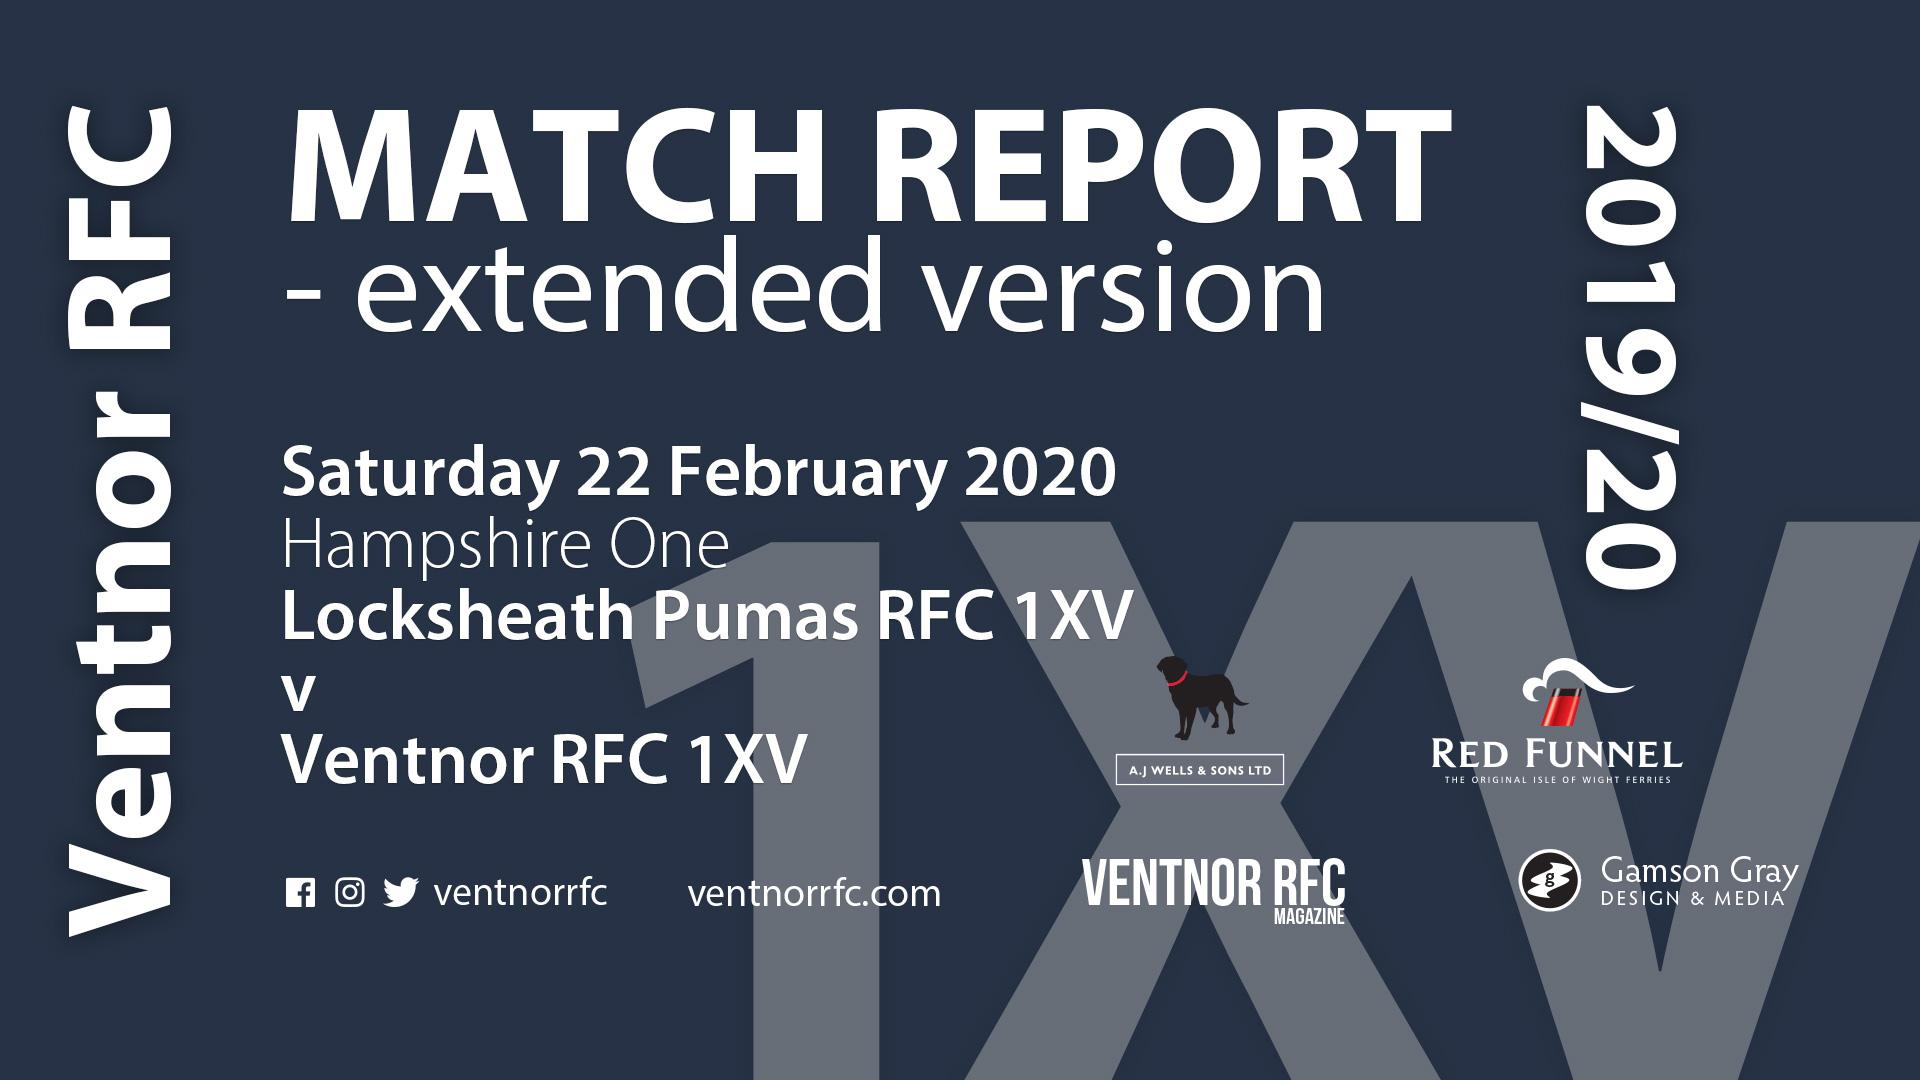 Locksheath Pumas RFC 1XV 22-14 Ventnor RFC 1XV, 22 February 2020 – extended match report